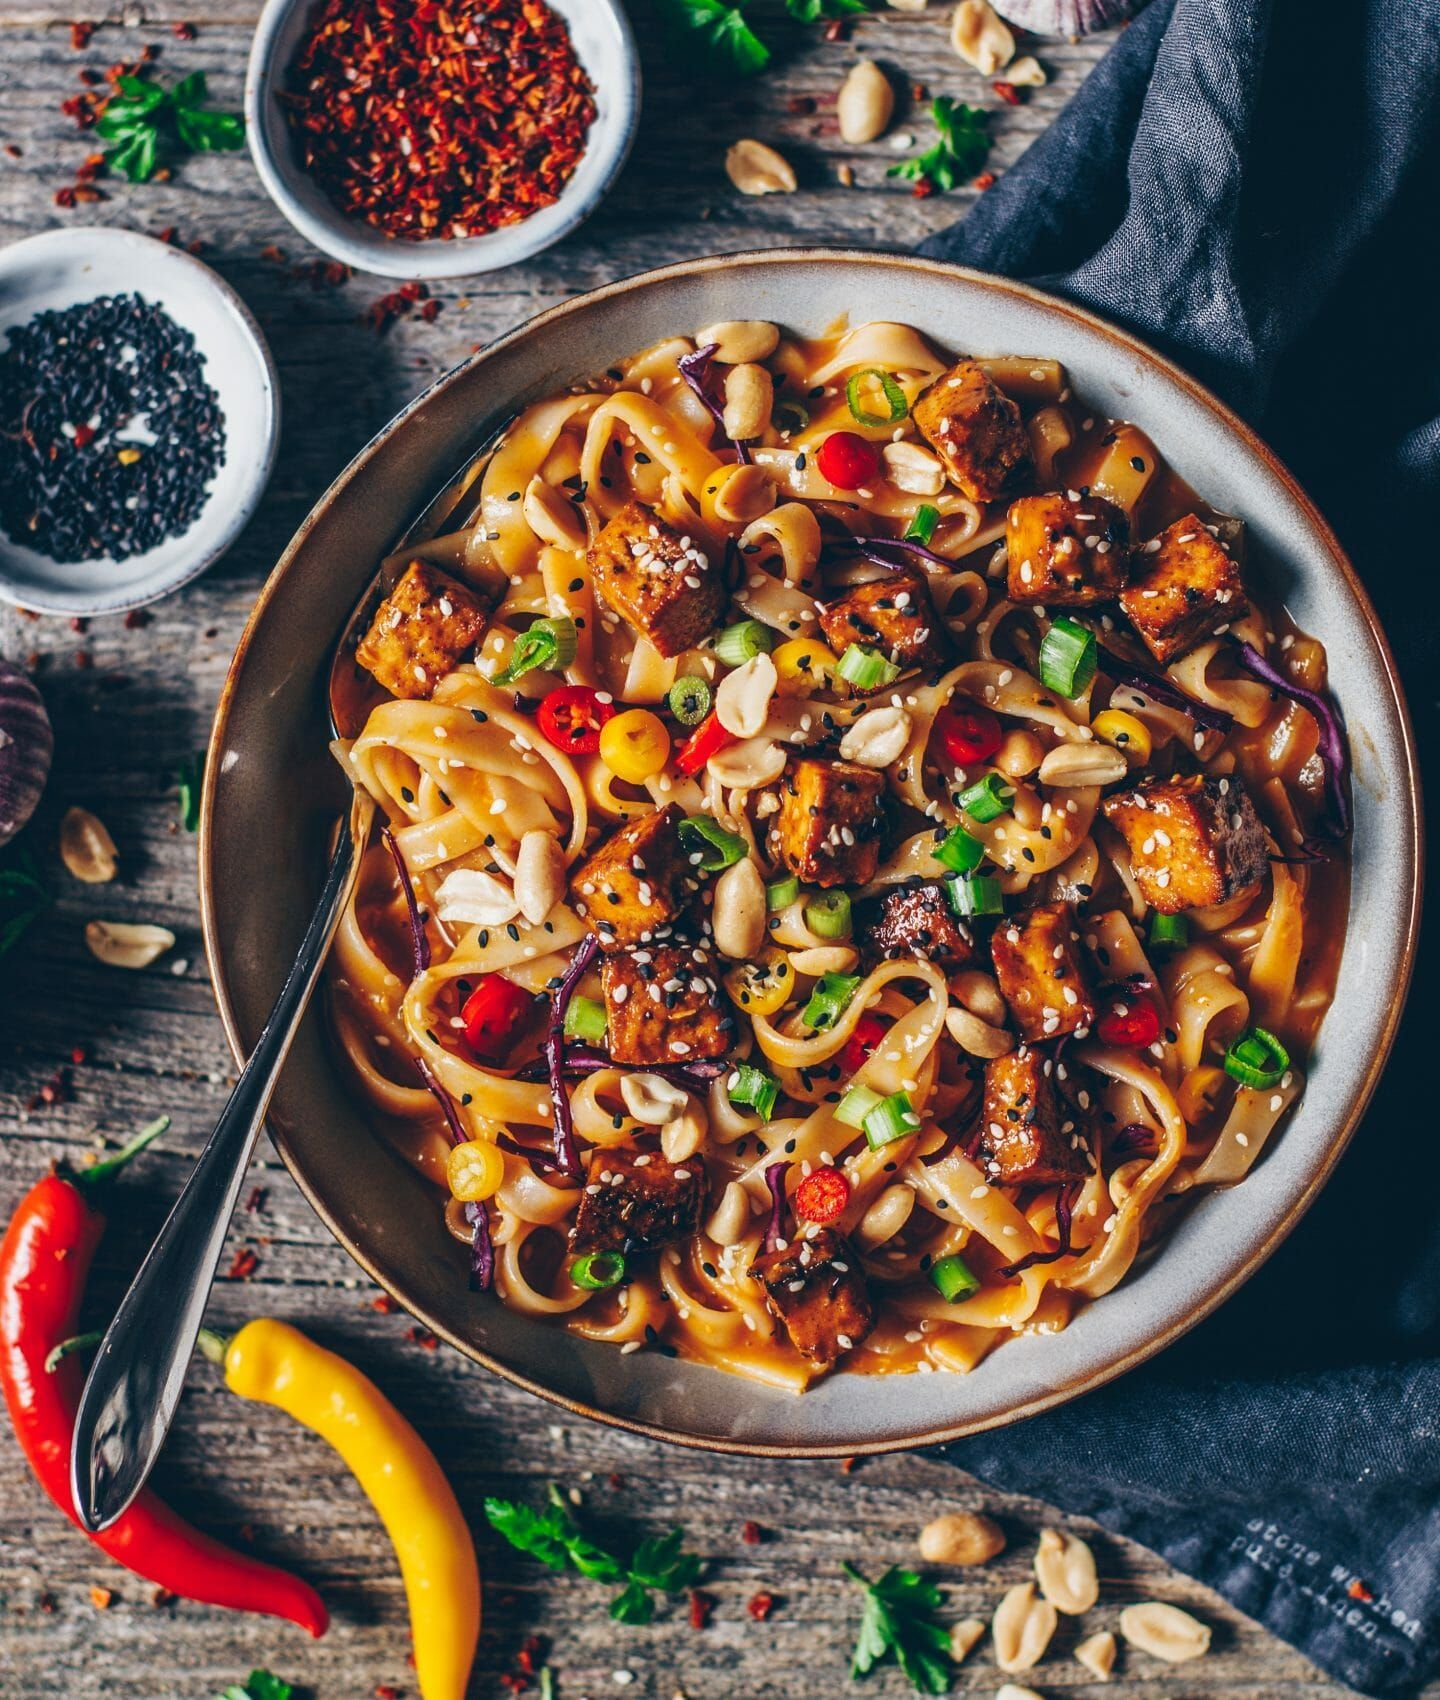 Asian noodles with tofu and peanut-sesame sauce - Bianca Zapatka | recipes -  Recipe for Asian noodles with a sauce made from chilli, peanut and sesame – vegan, quick and easy - #asian #bianca #crispierecipes #noodles #peanut #peanutsesame #recipes #sauce #sesame #tofu #zapatka